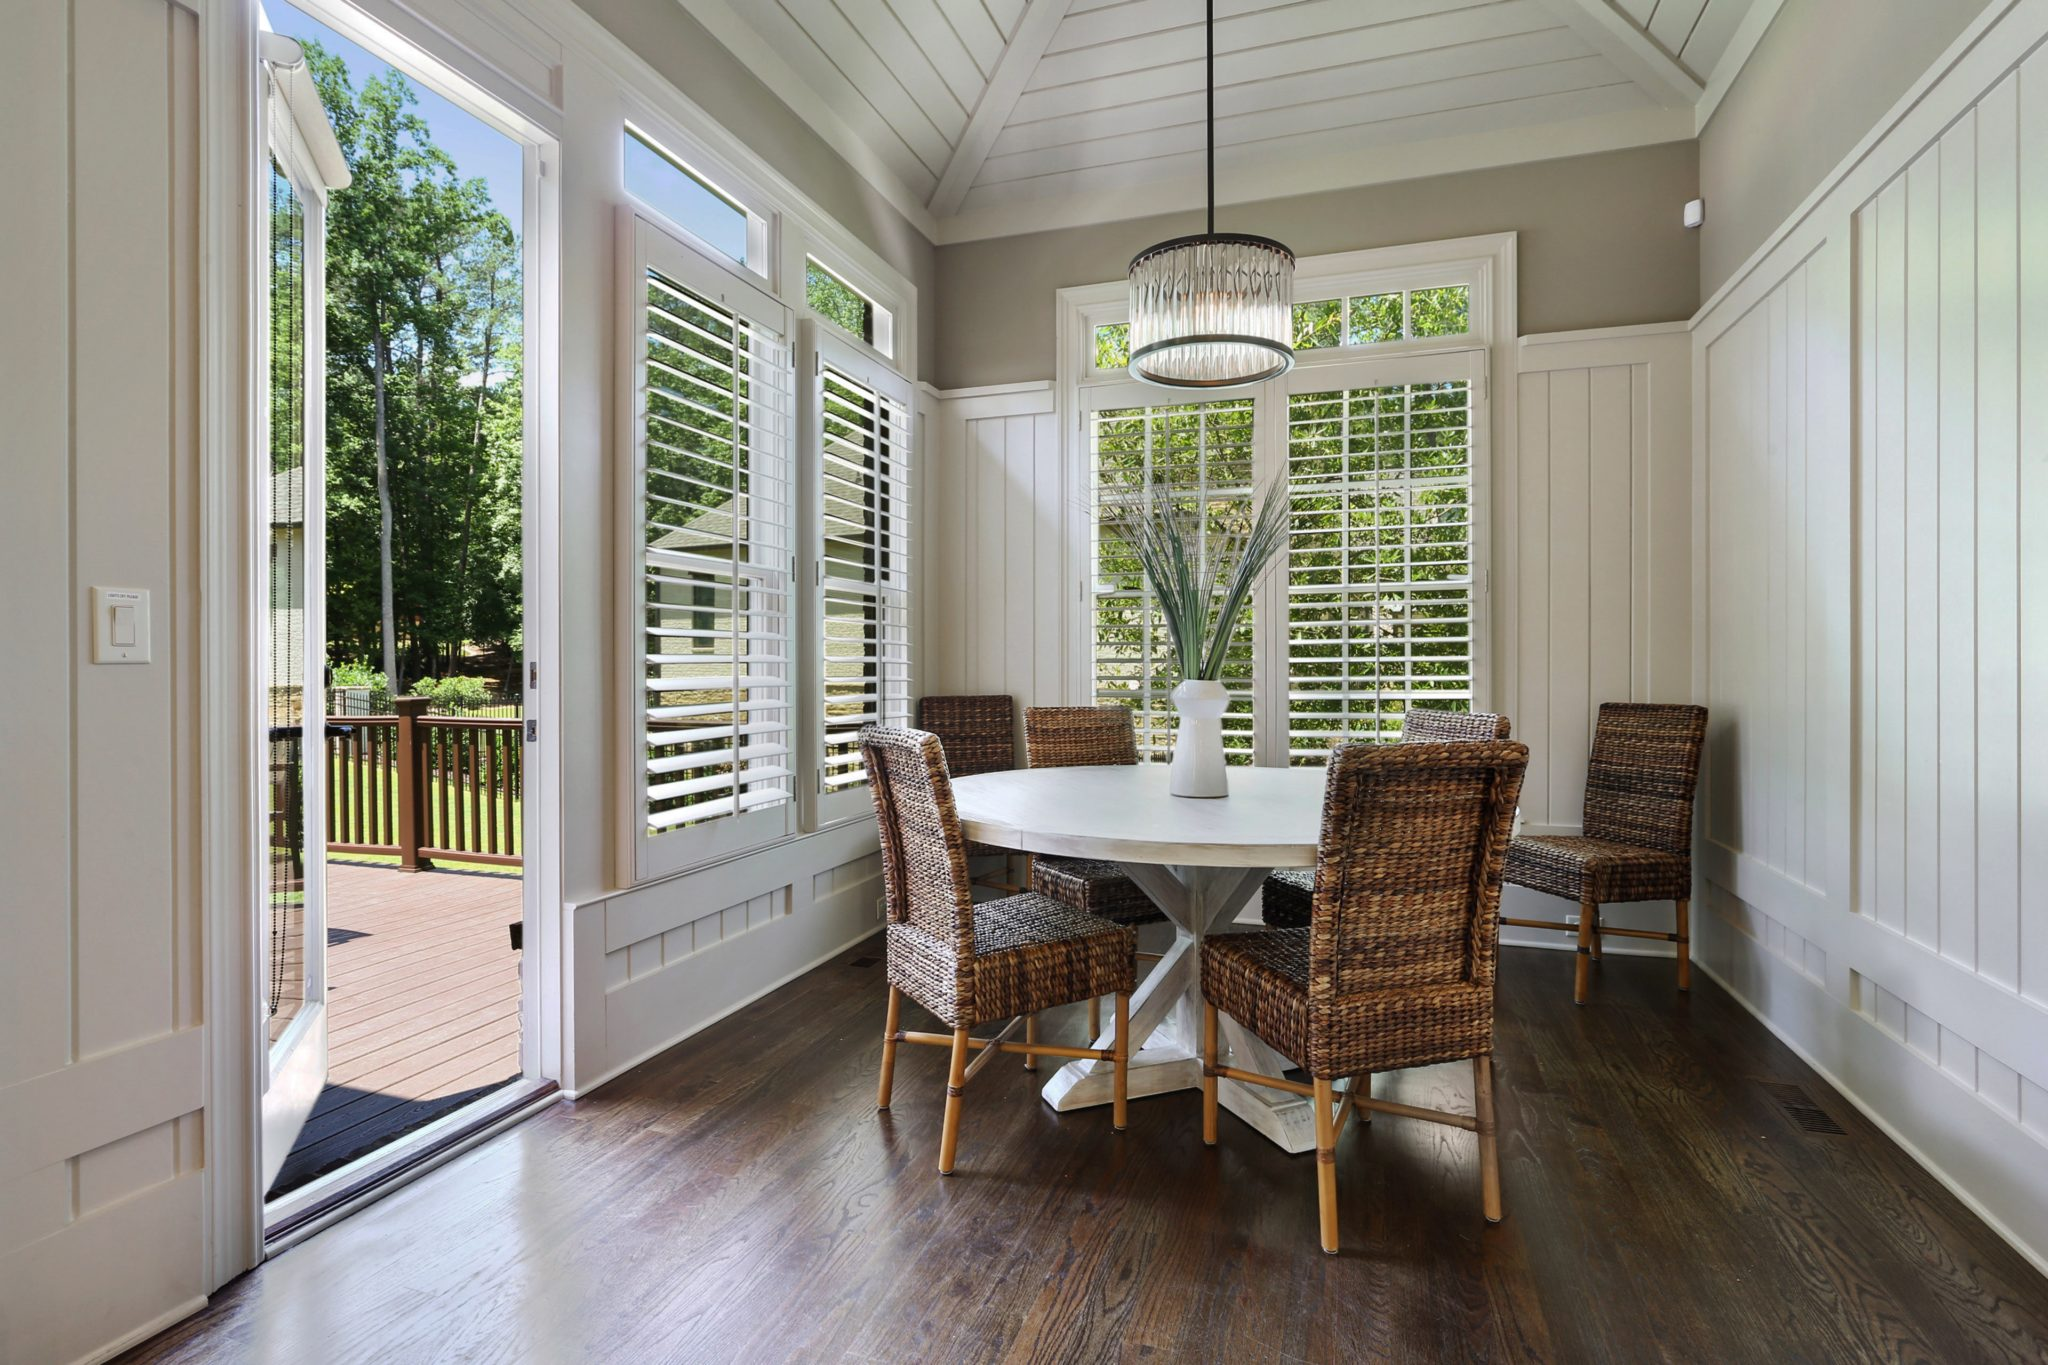 White paneling andaccent rattan chairs make for a stunning breakfast nook by BJS Assoc Interior Design